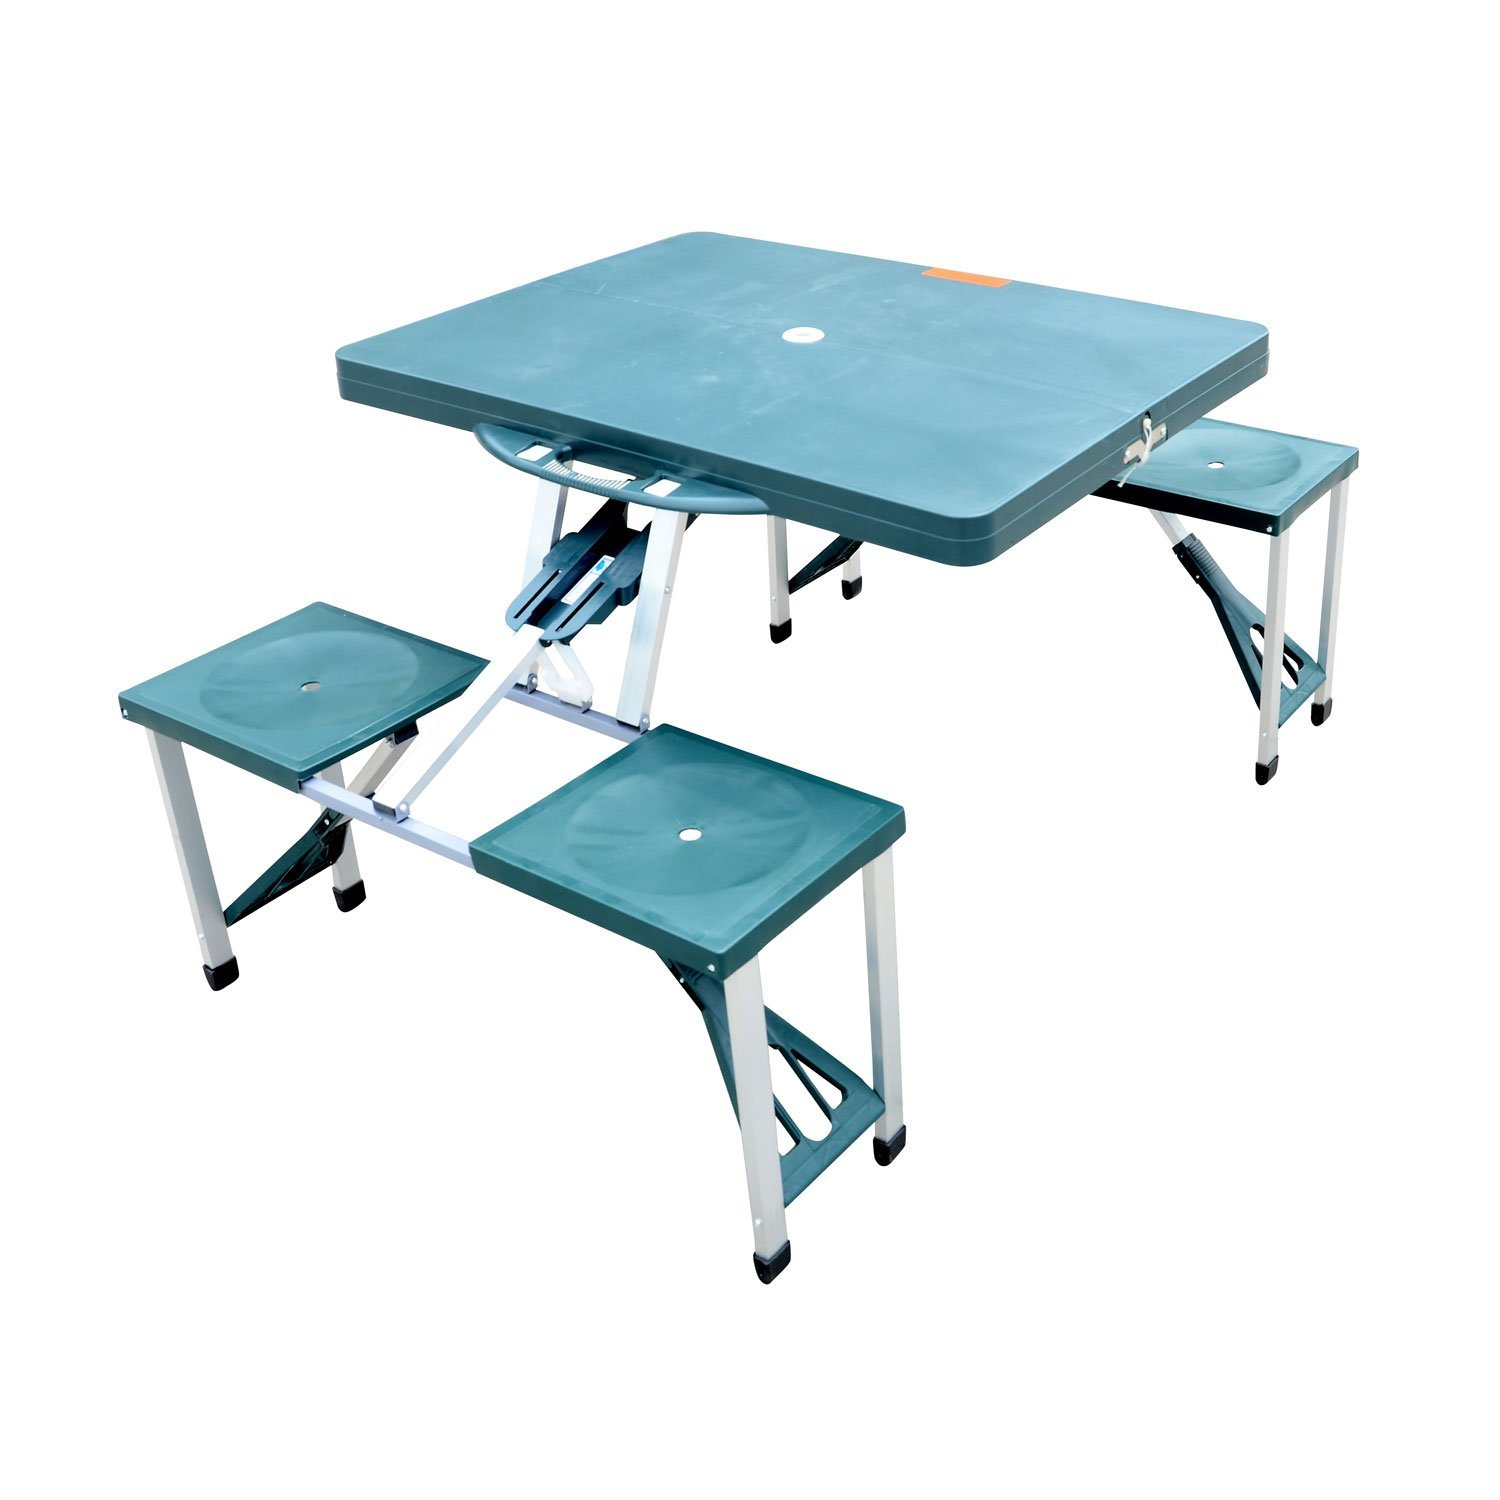 outsunny outdoor portable folding picnic table w/ seats - green ZMVQSWI